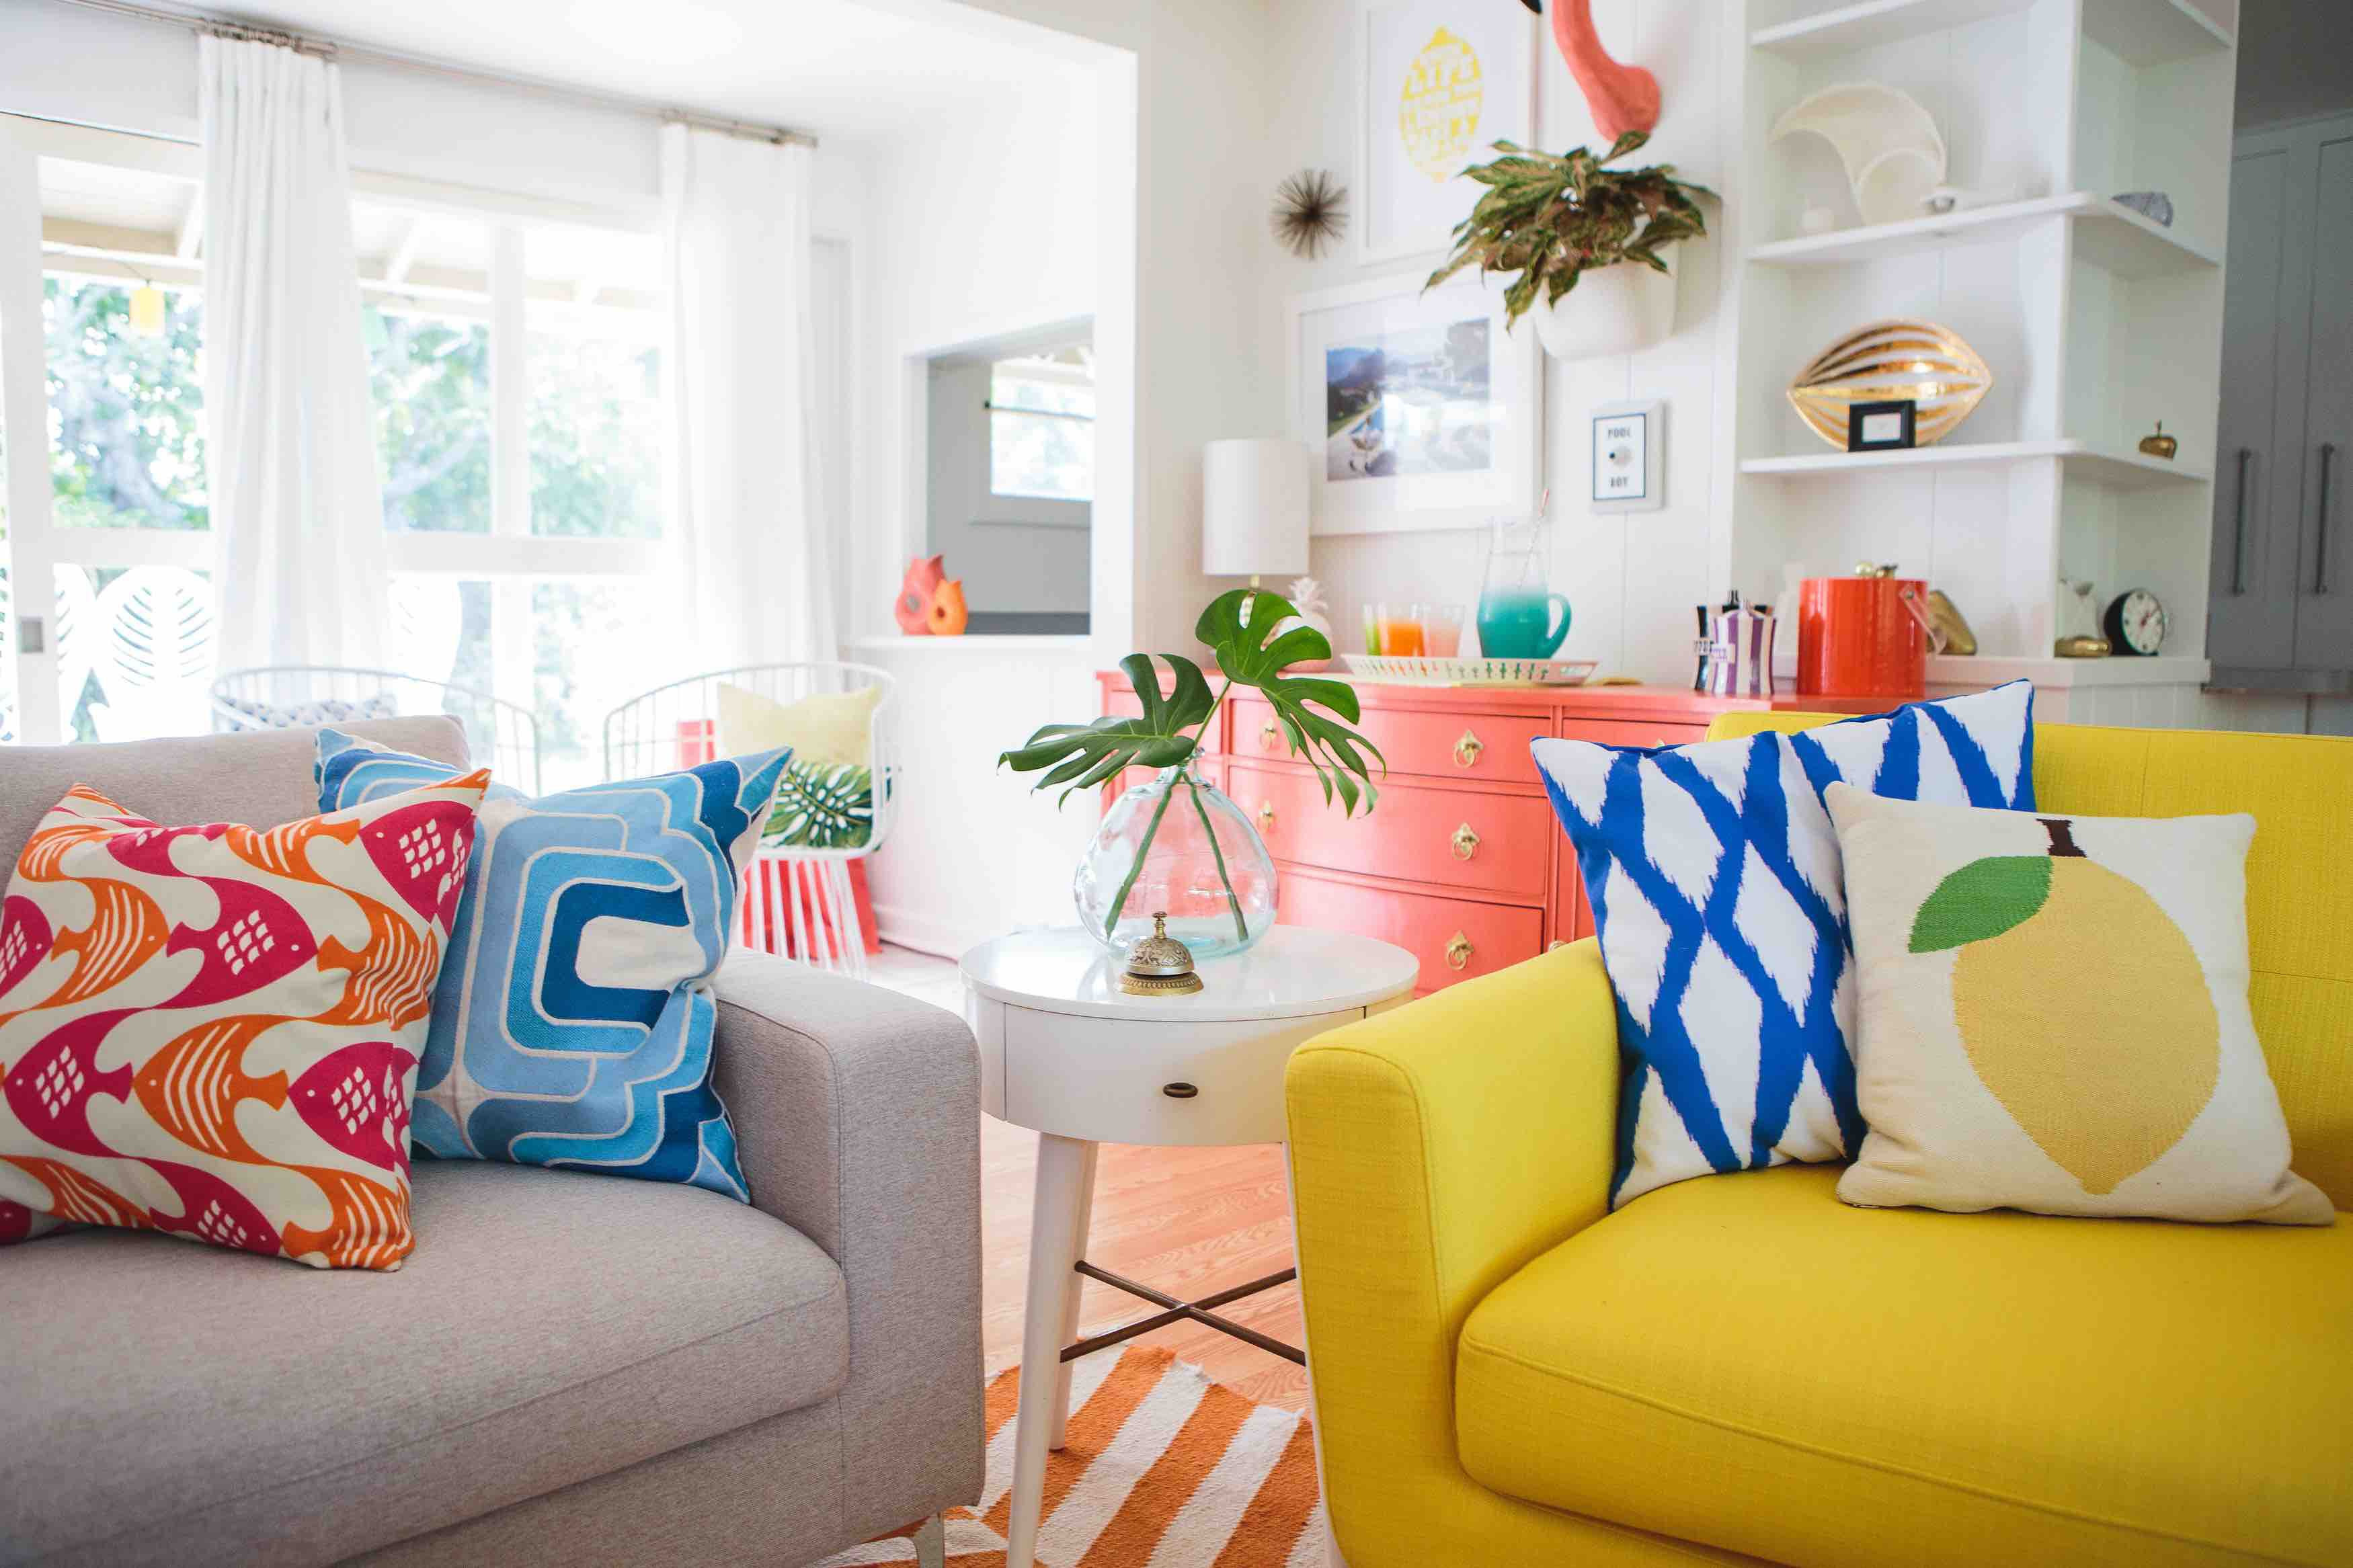 11 Ways to Add Retro Style to Your Decor